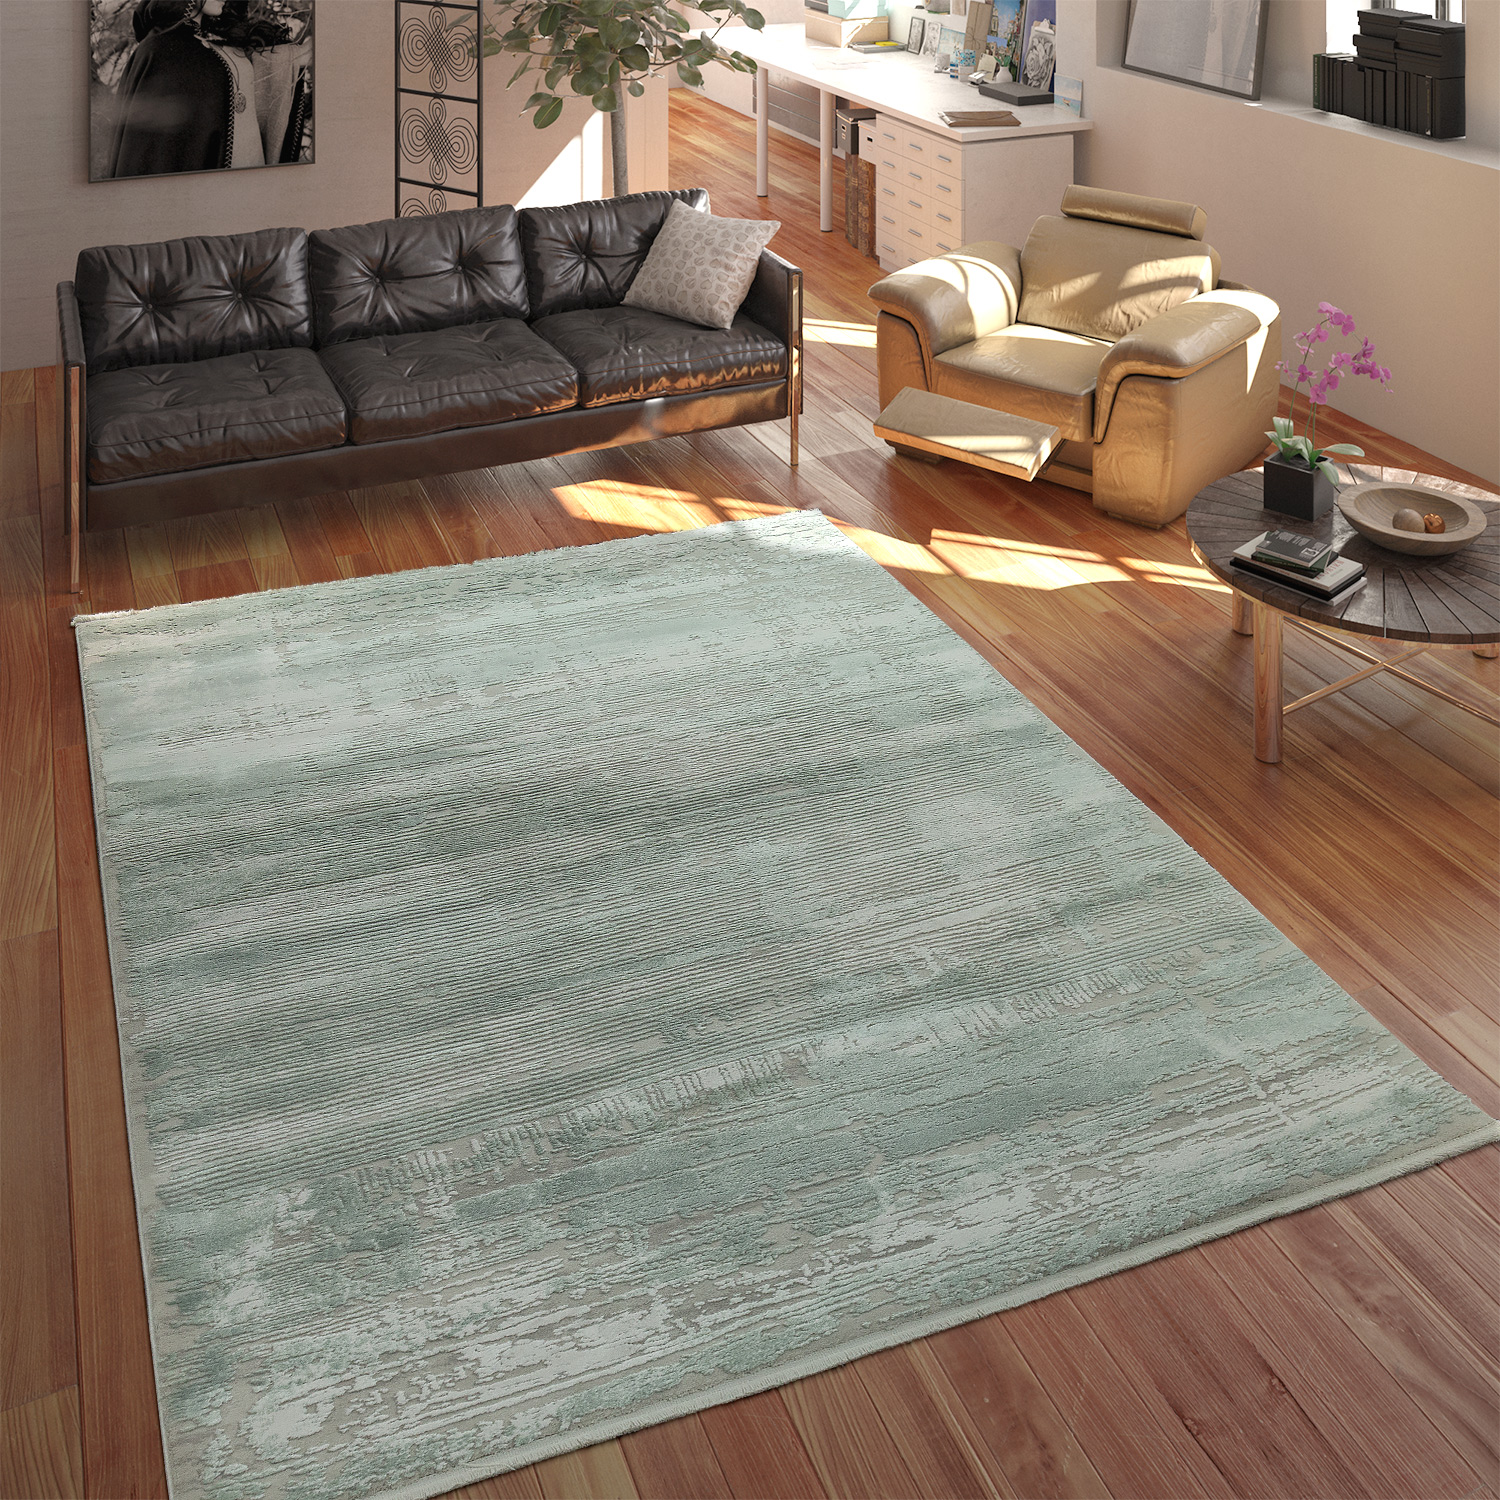 tapis salon acrylique look shabby chic franges effet 3d vert menthe gris tapis tapis vintage. Black Bedroom Furniture Sets. Home Design Ideas